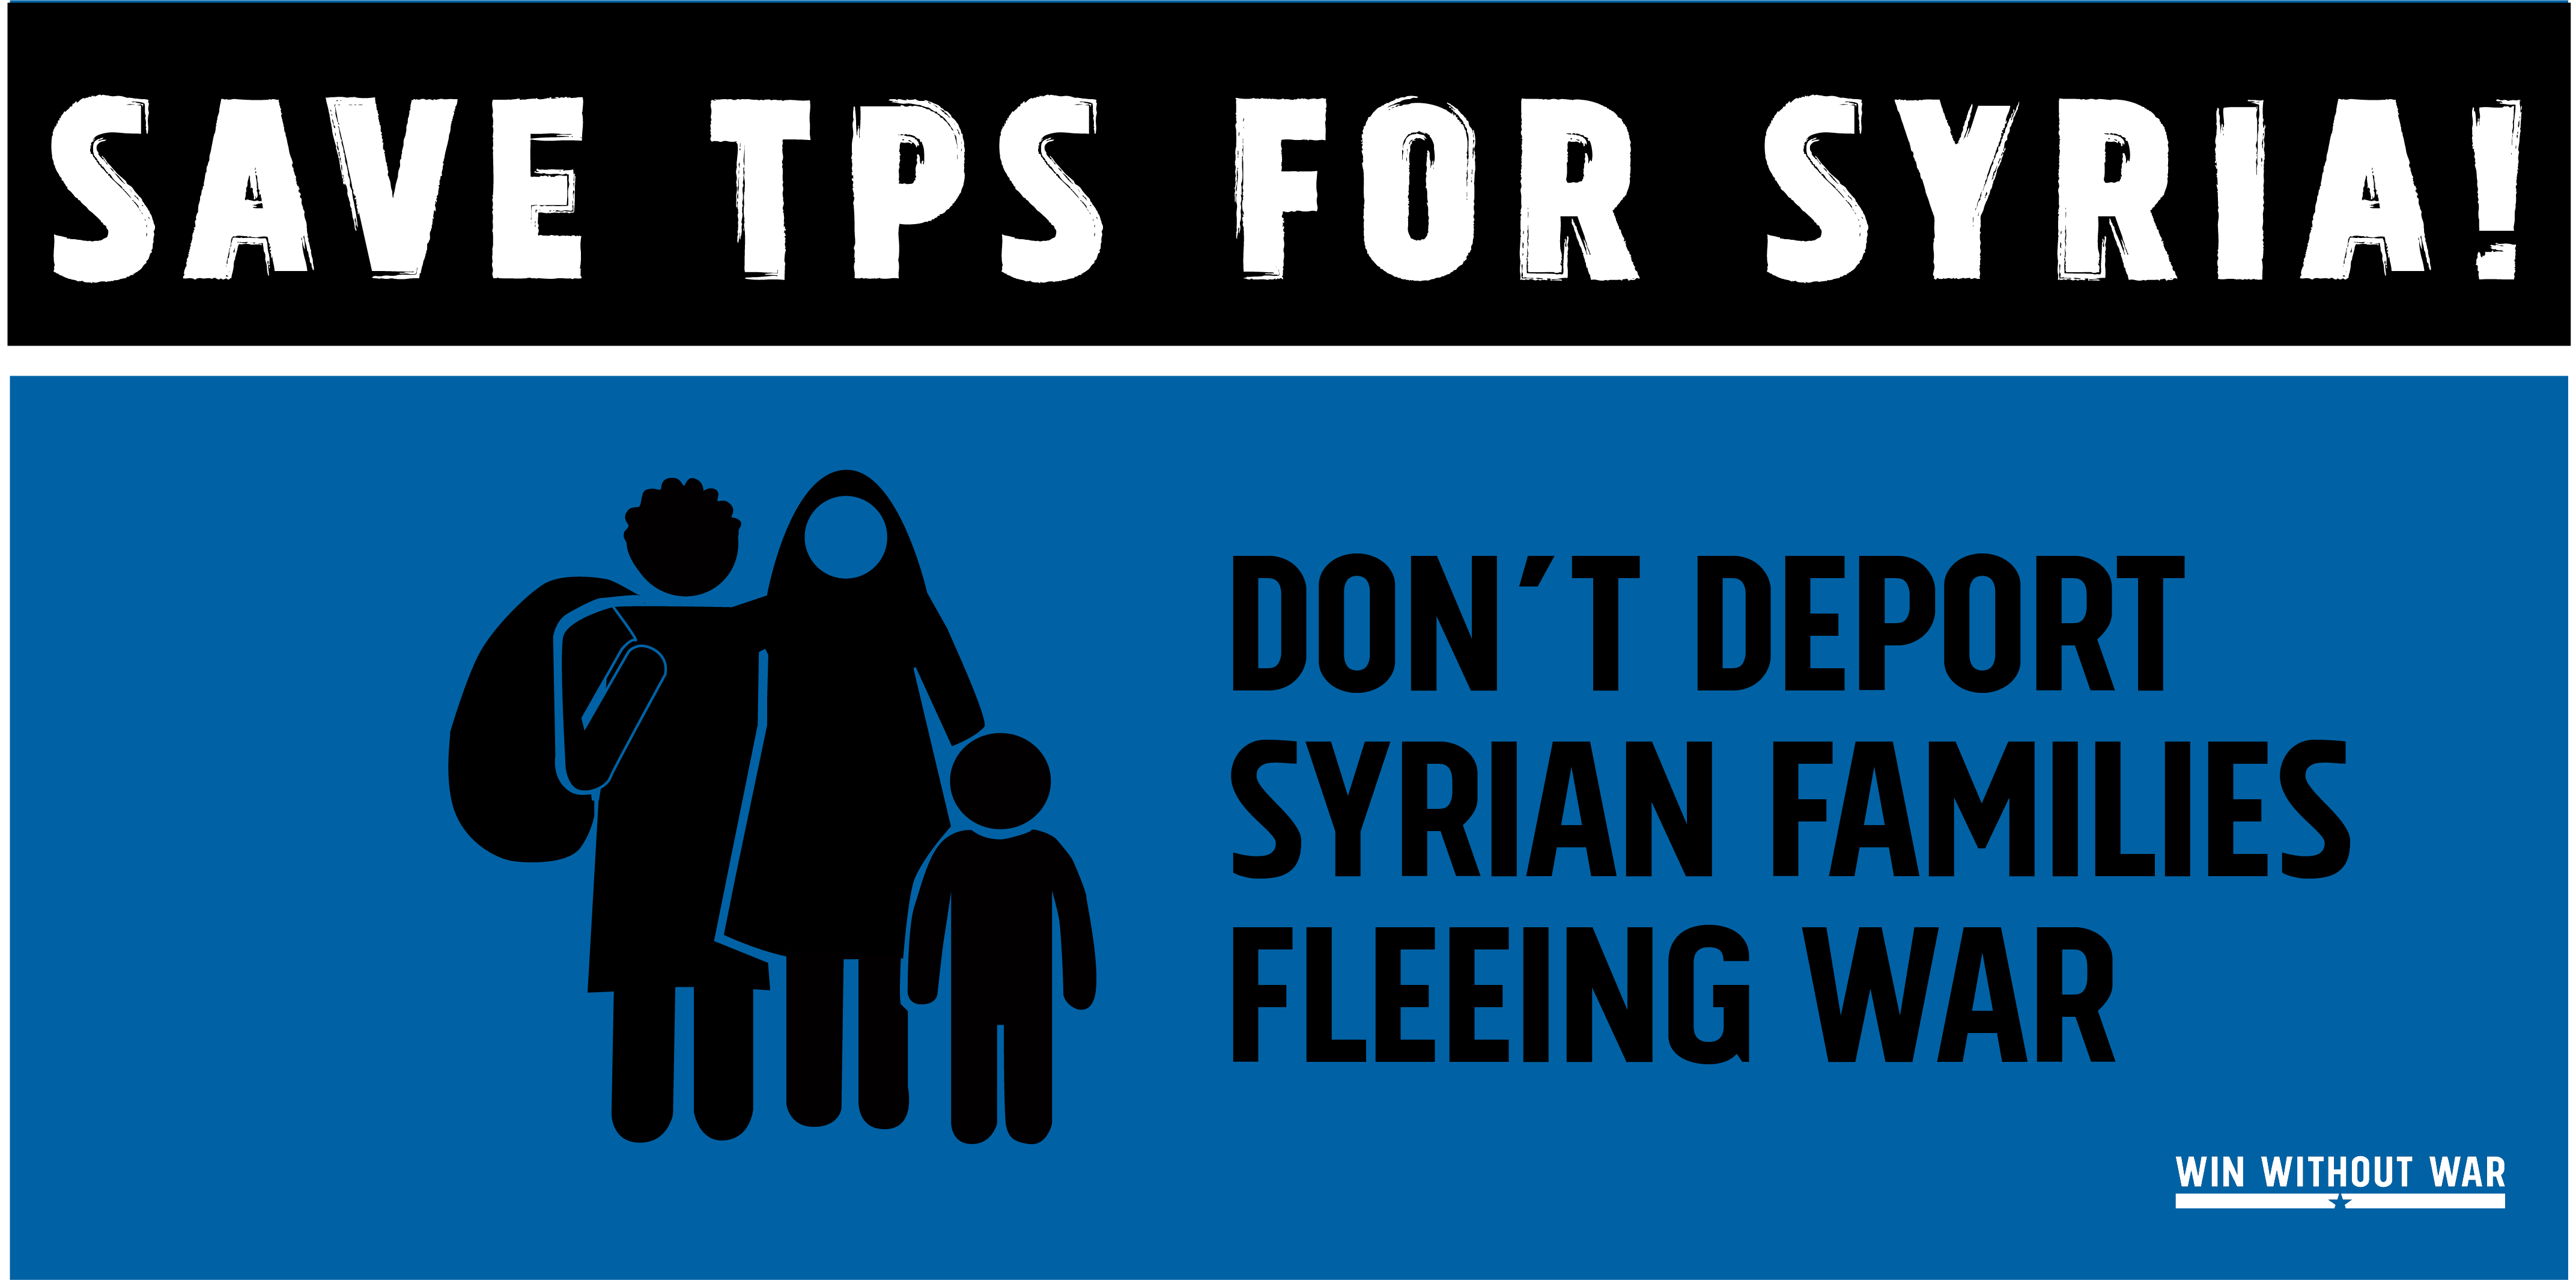 Tell Congress: Save TPS for Syria